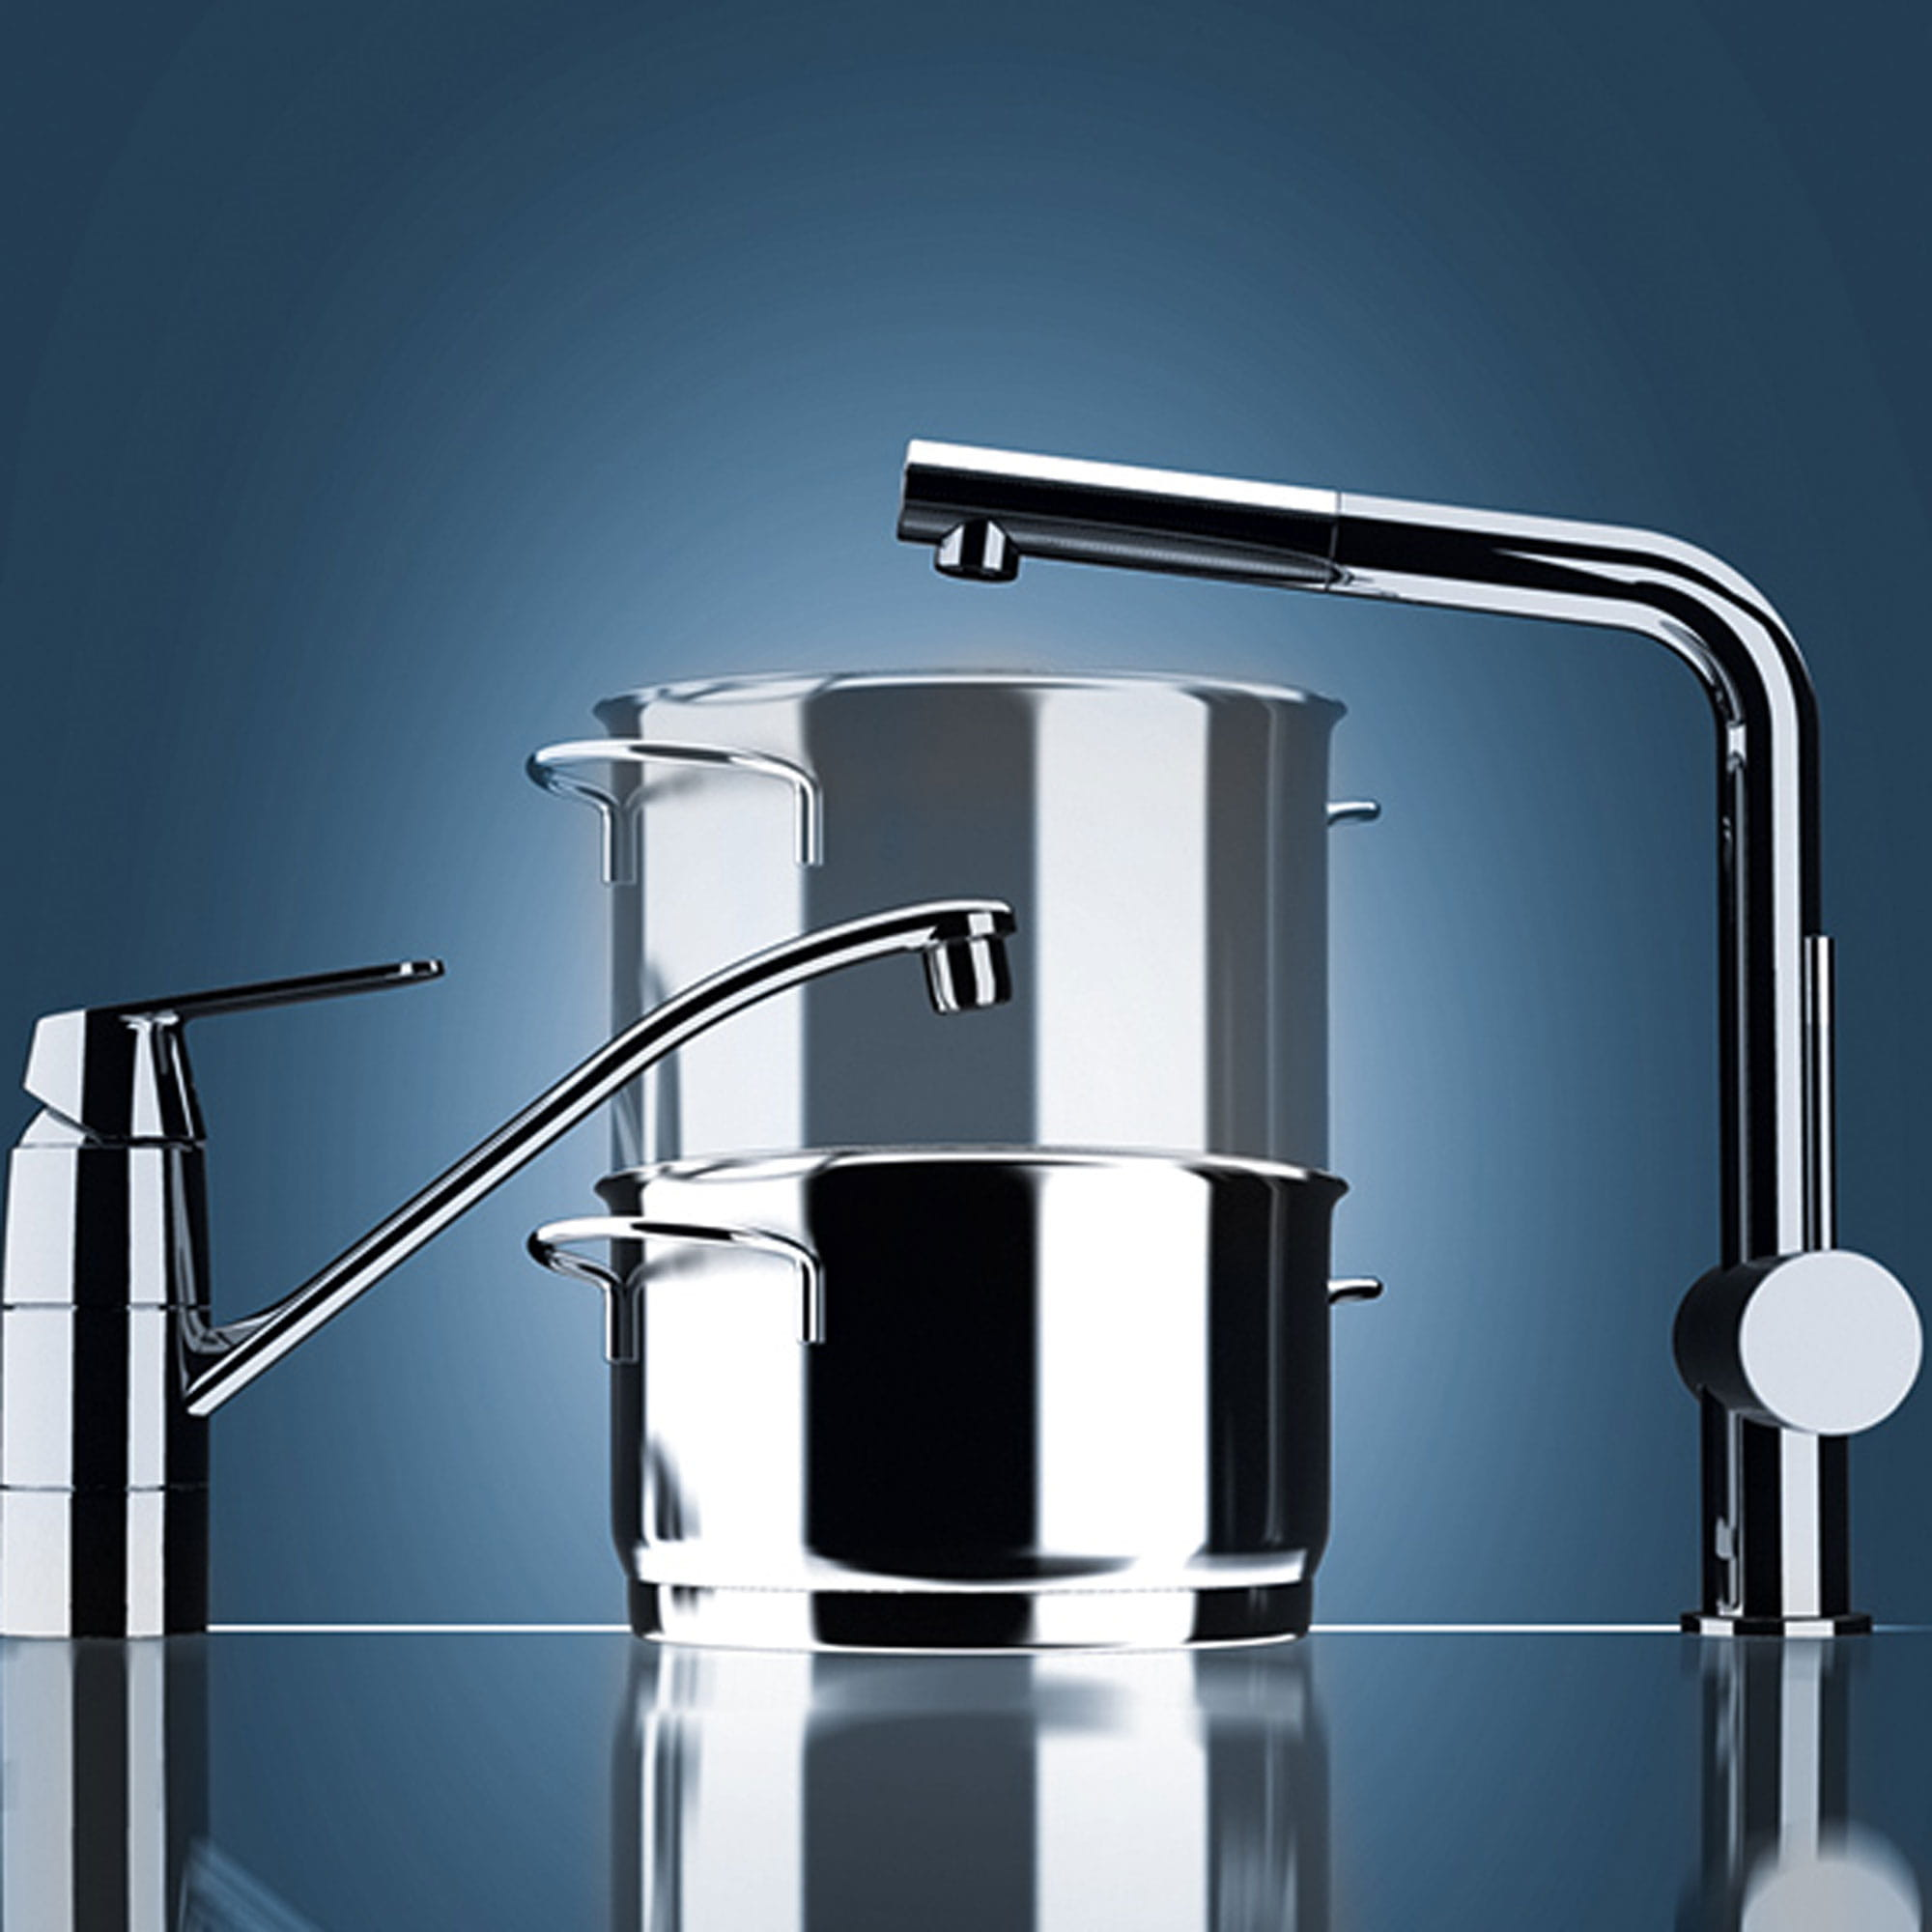 little faucet and big faucet for filling pots in background